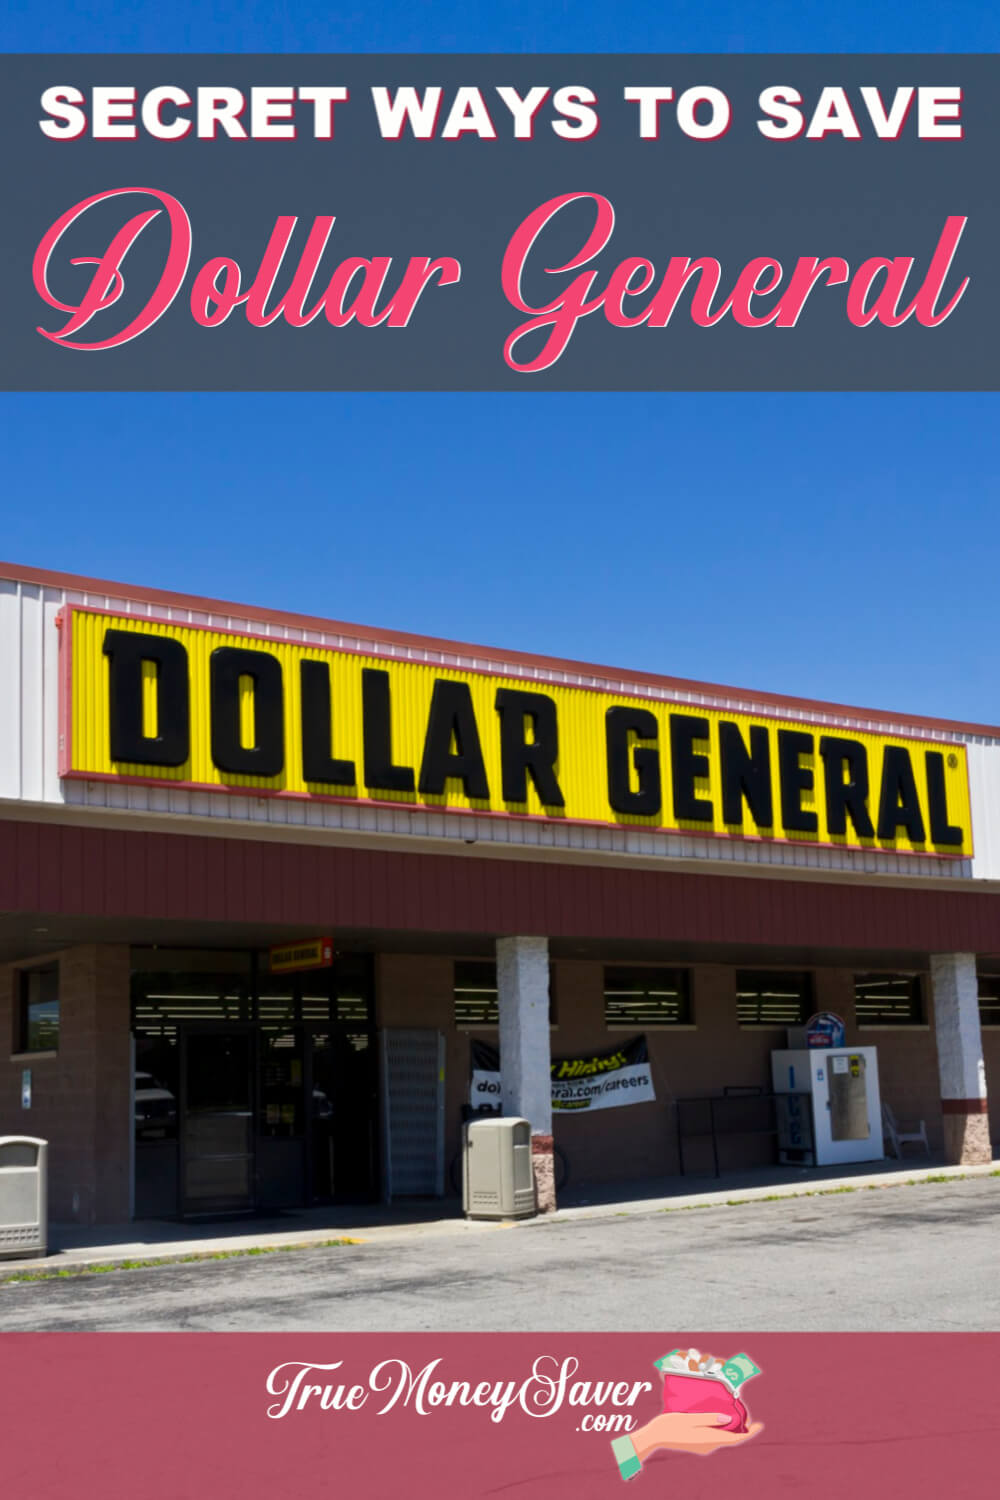 Need some Dollar General shopping tips? I\'ve got the best Dollar General saving hacks and Dollar General couponing tips to help you save more! Plus, if saving money at Dollar General is your kind of fun, these Dollar General secret savings tips are just for you! Start saving today!